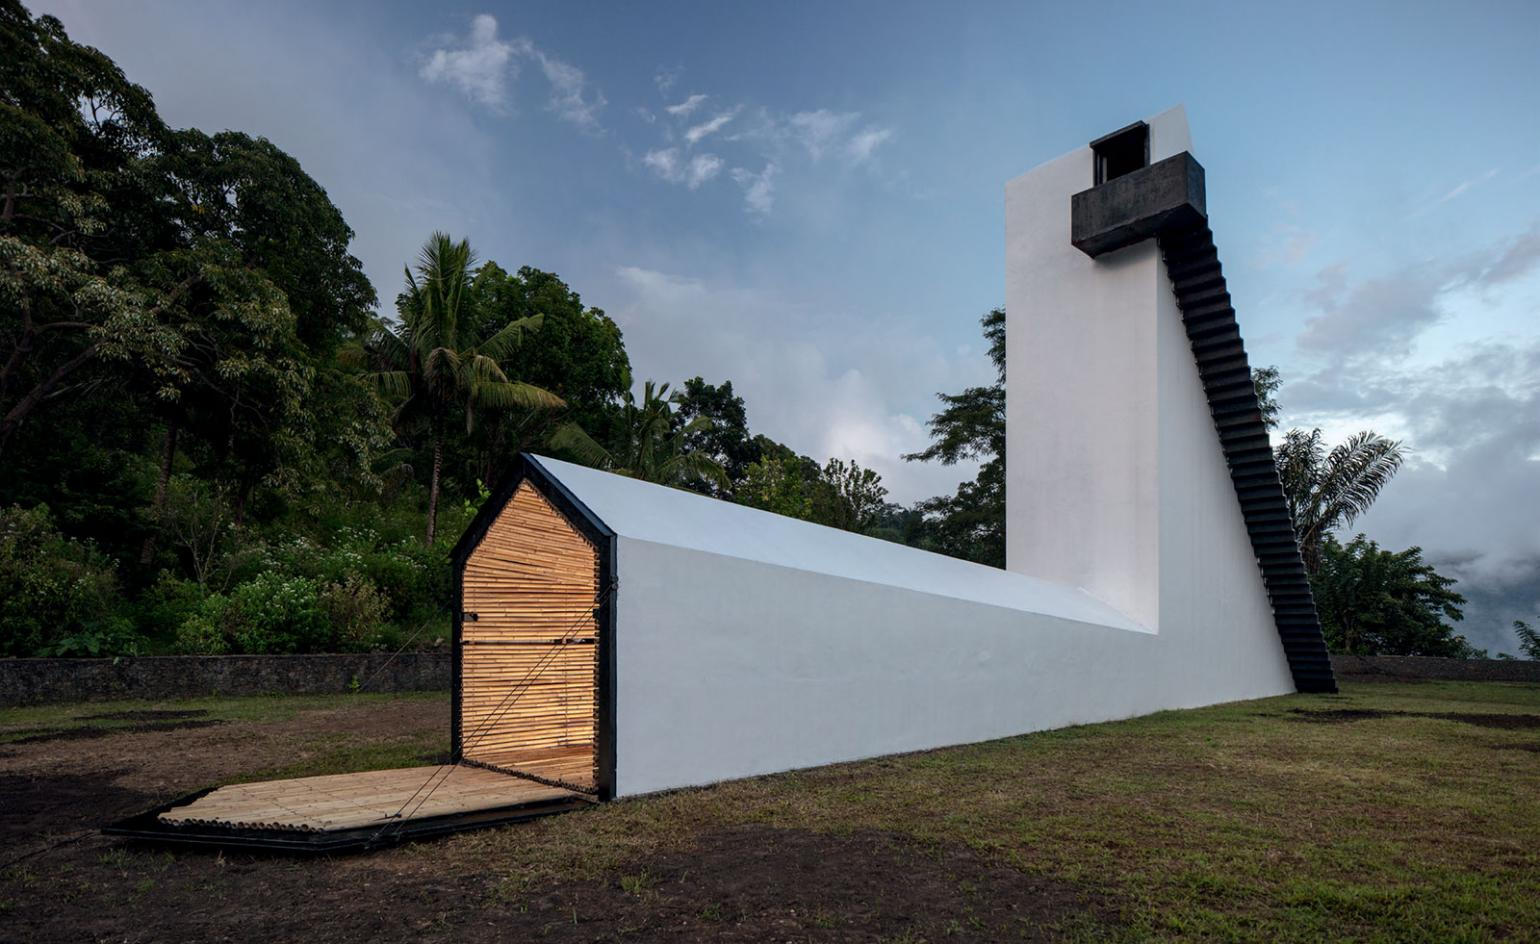 Not Vital and his soaring House to Watch Three Volcanoes go to extremes in pursuit of a view